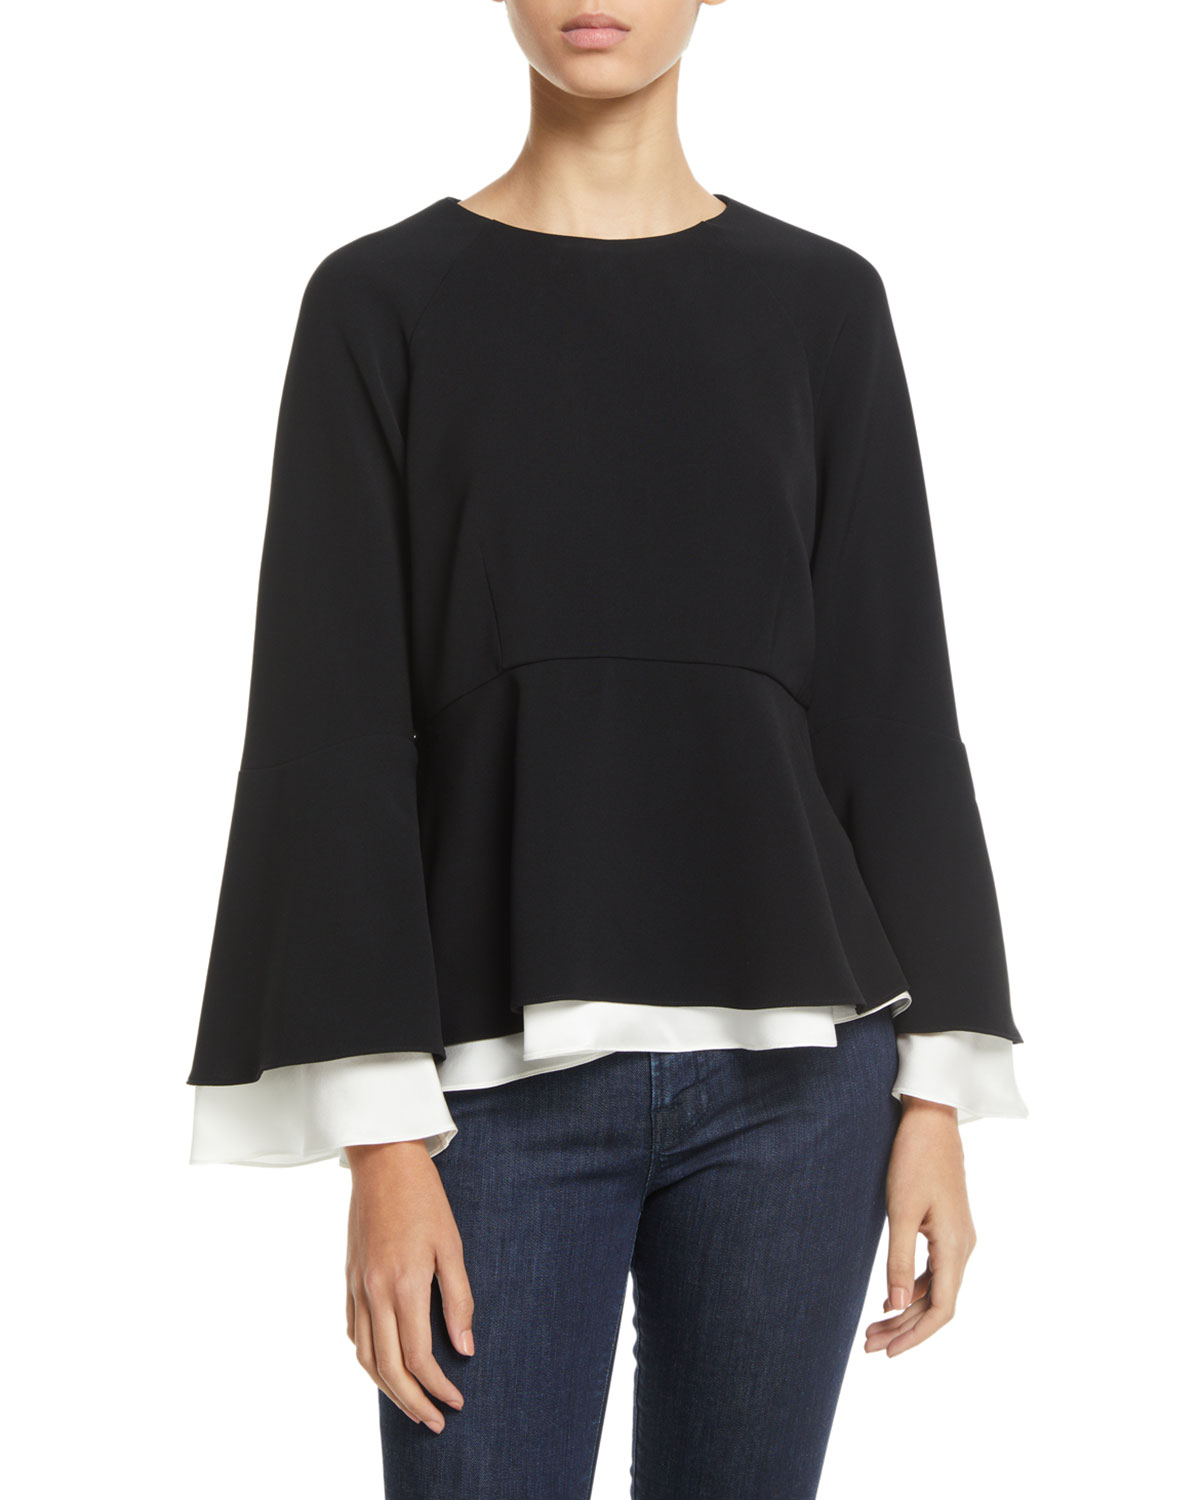 Avalon Crepe Long-Sleeve Layered Top in Blackivory